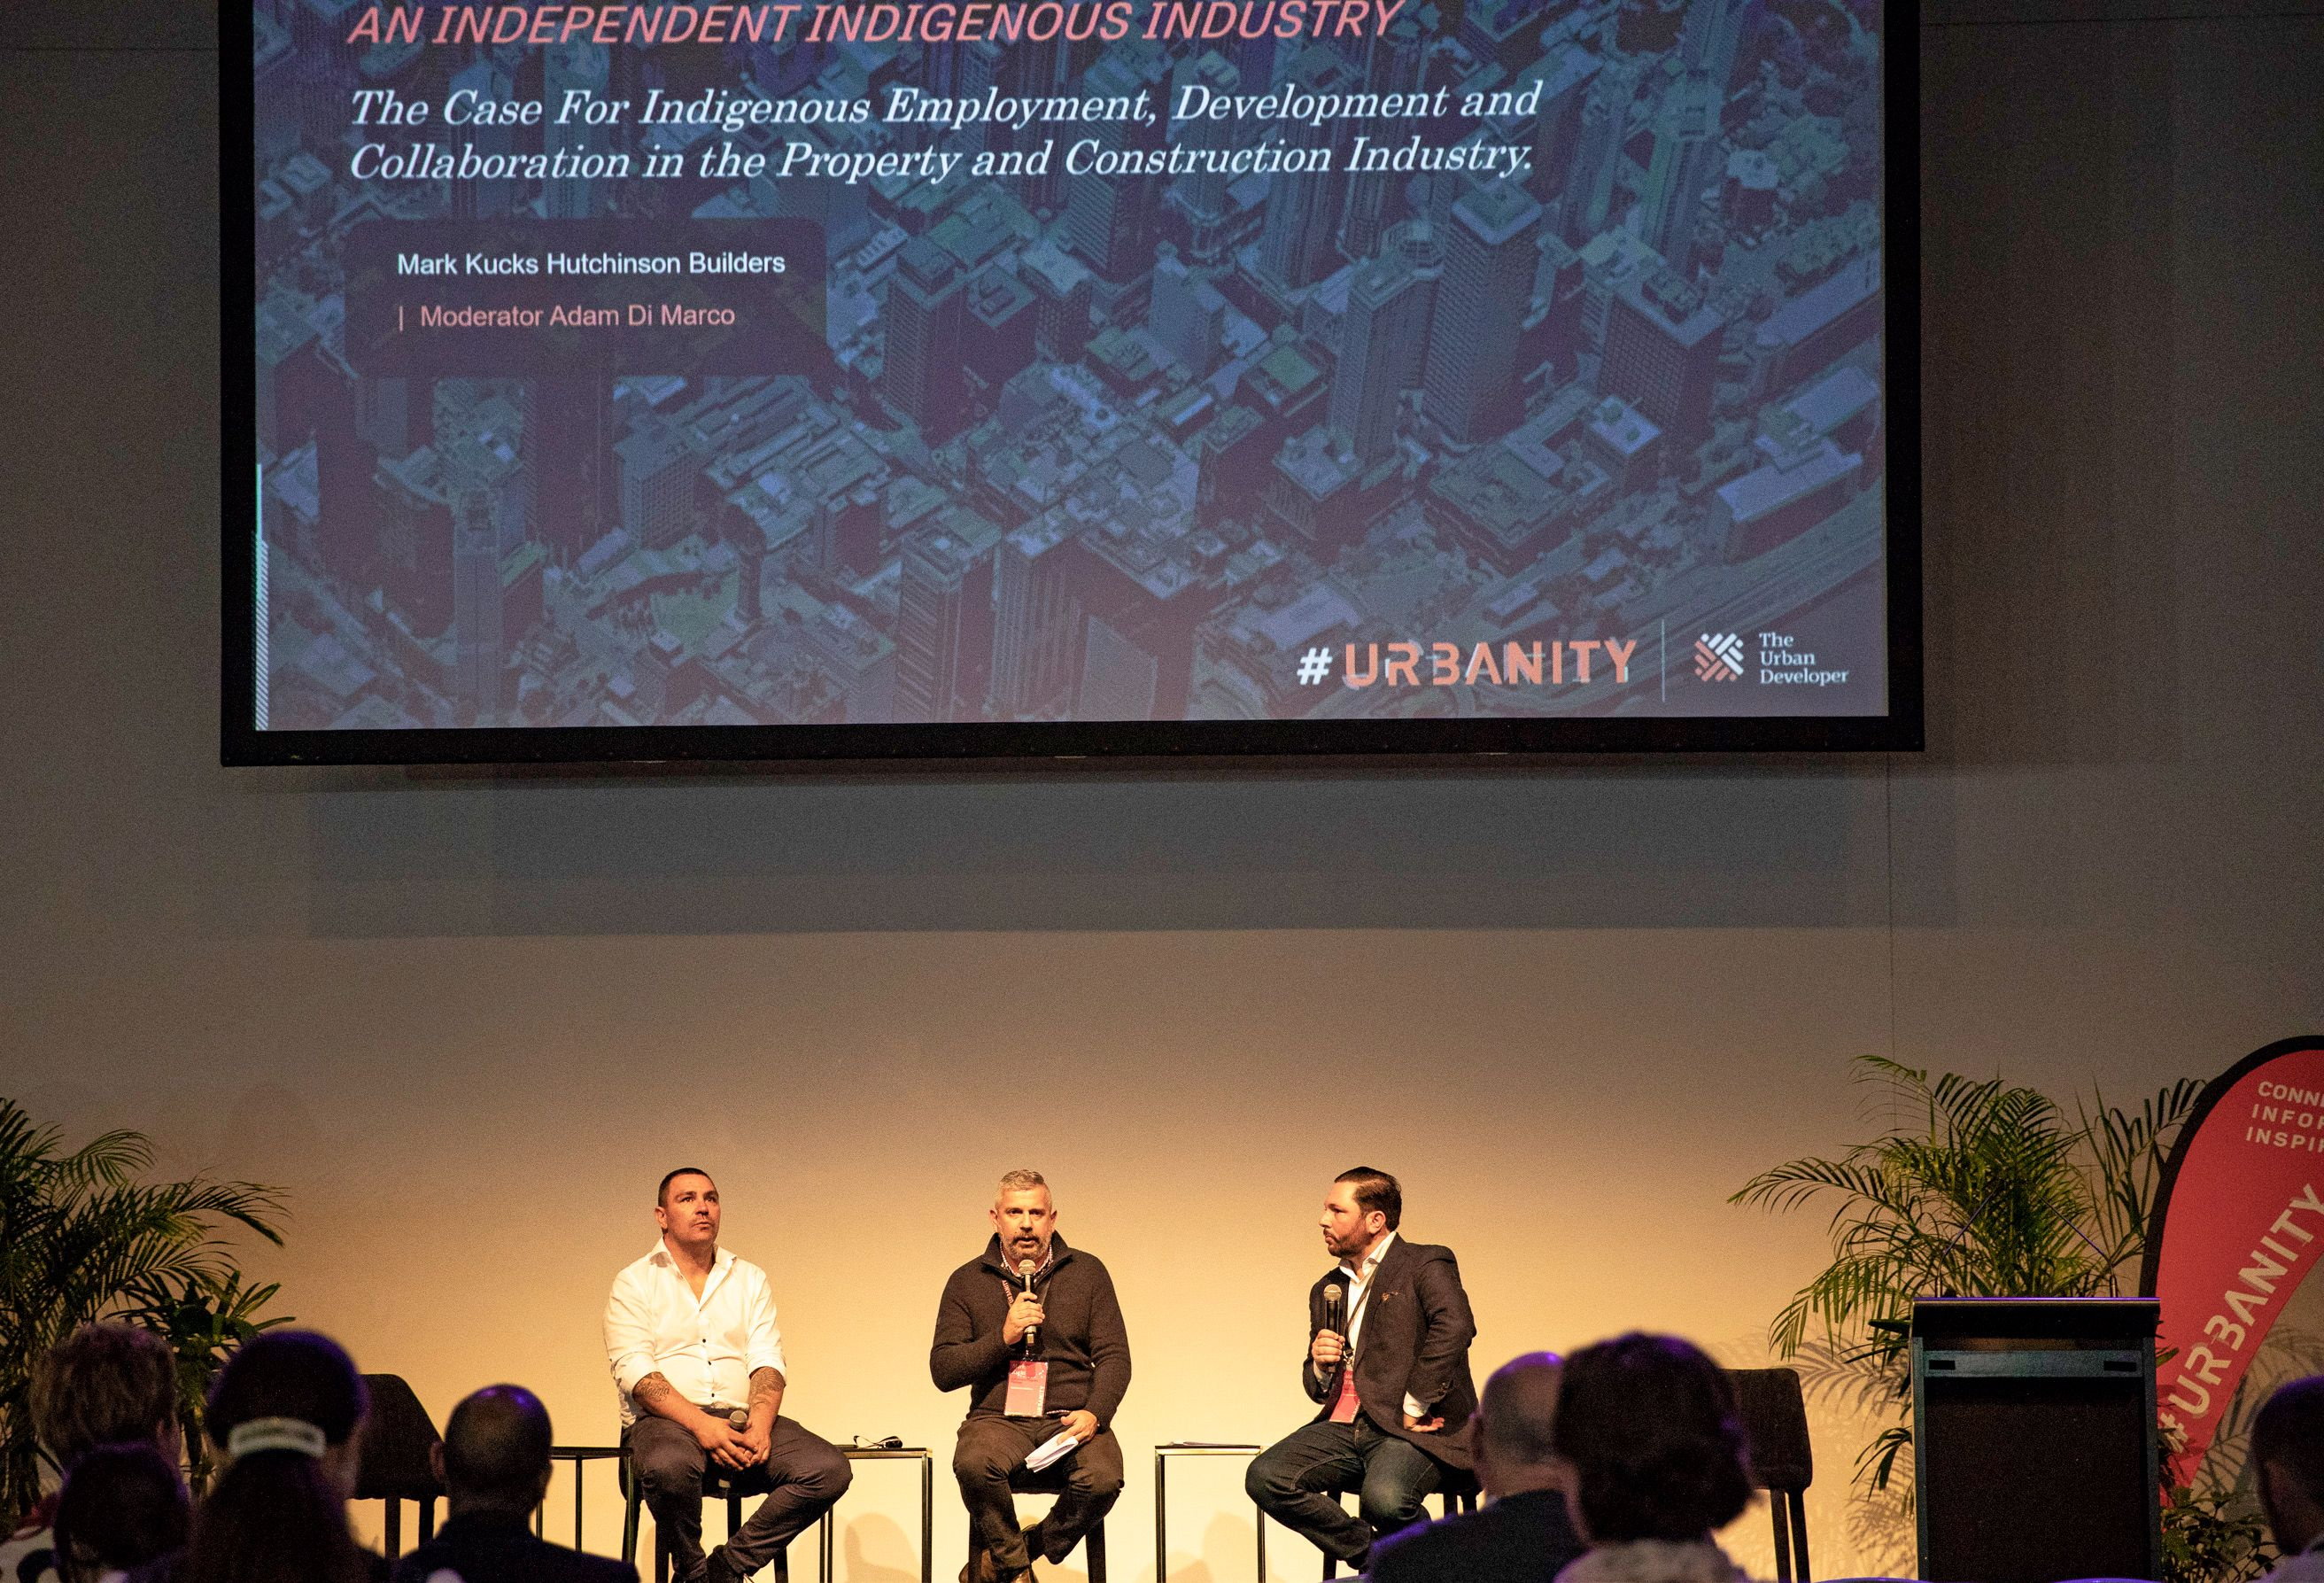 Walking with Wisdom Founder Jeremy Donovan and Hutchinson Builder's Mark Kucks speaking at Urbanity with The Urban Developer's Adam Di Marco.